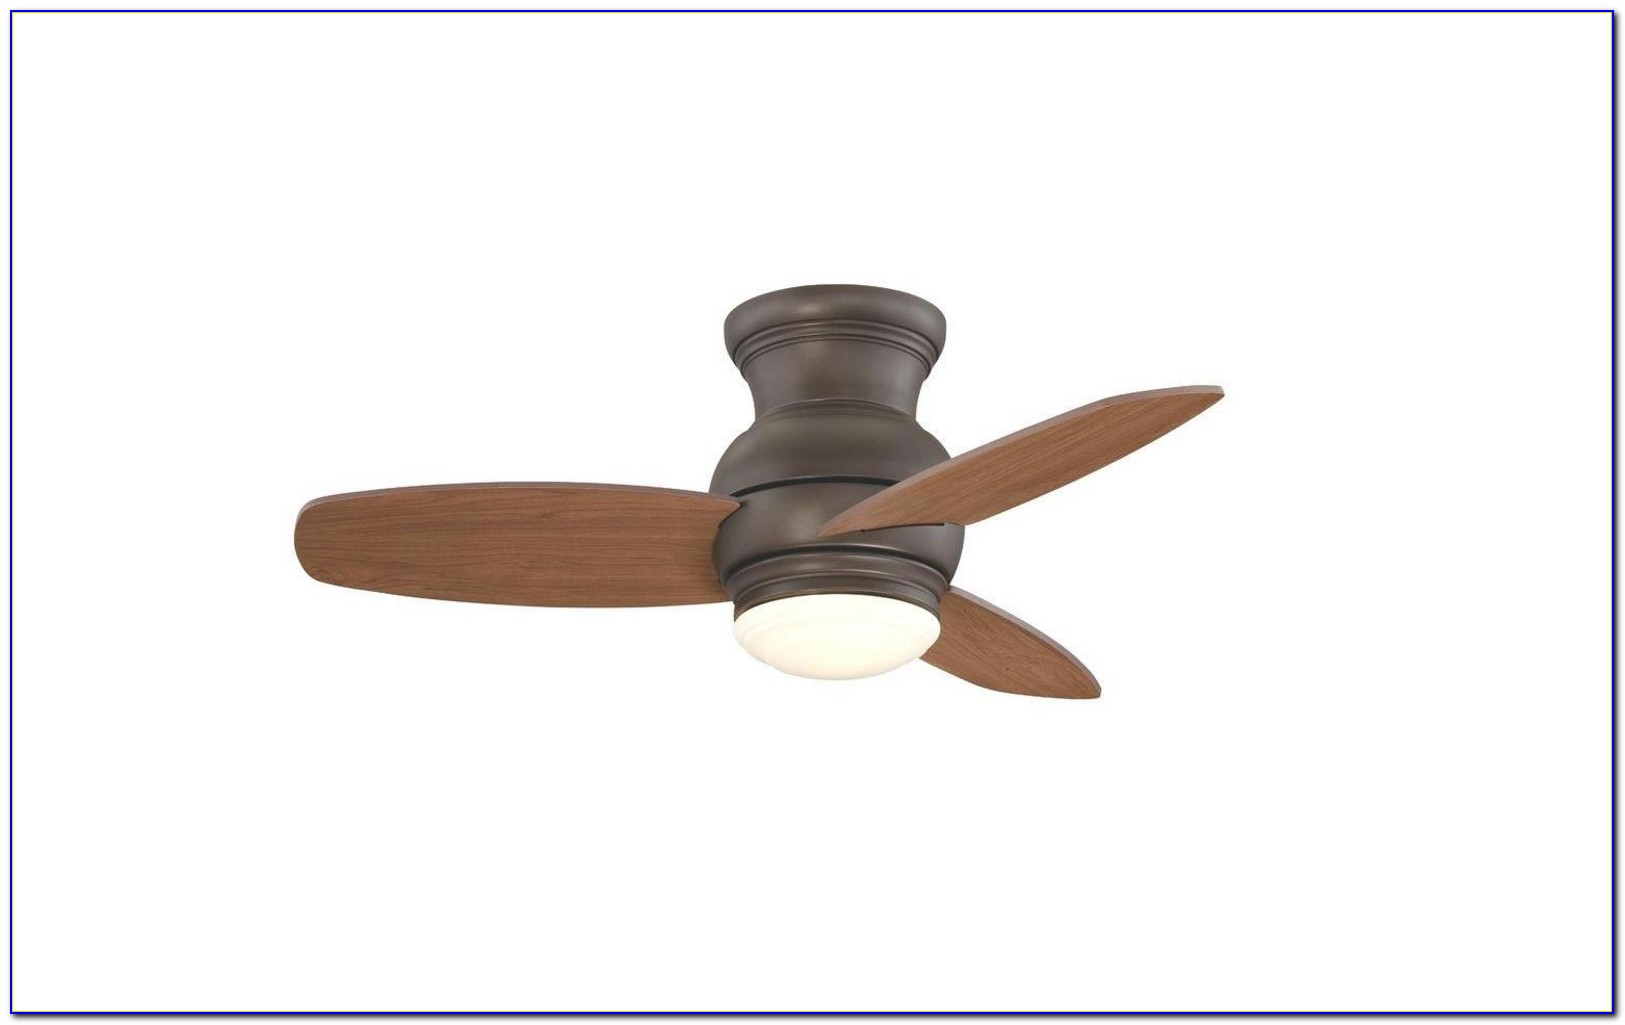 Hampton Bay Flush Mount Ceiling Fan Instructions